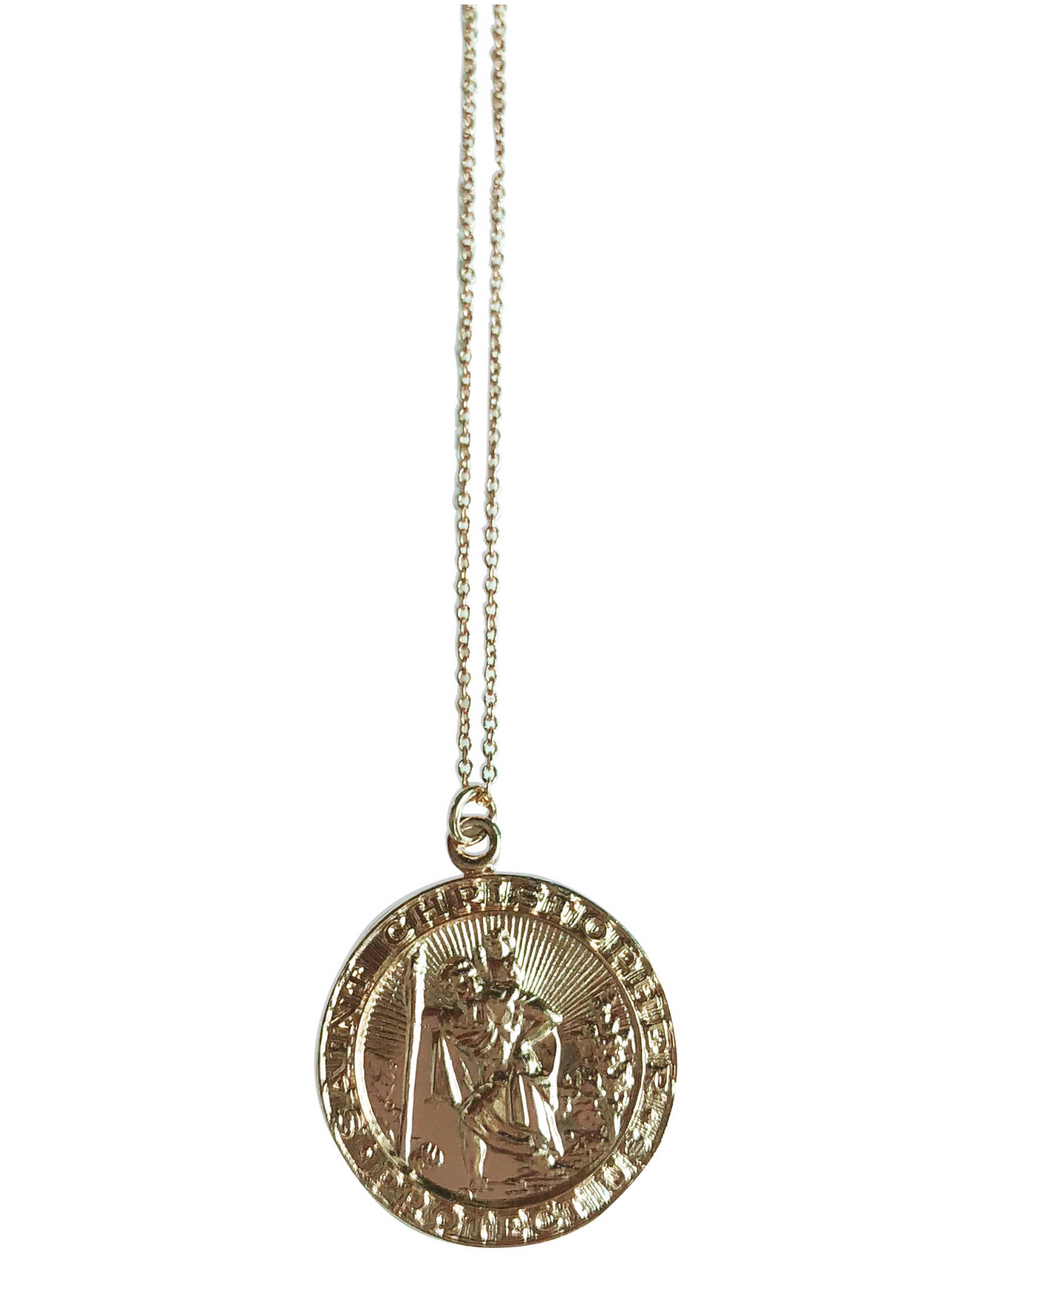 St Christopher Necklace - Accent's Novato